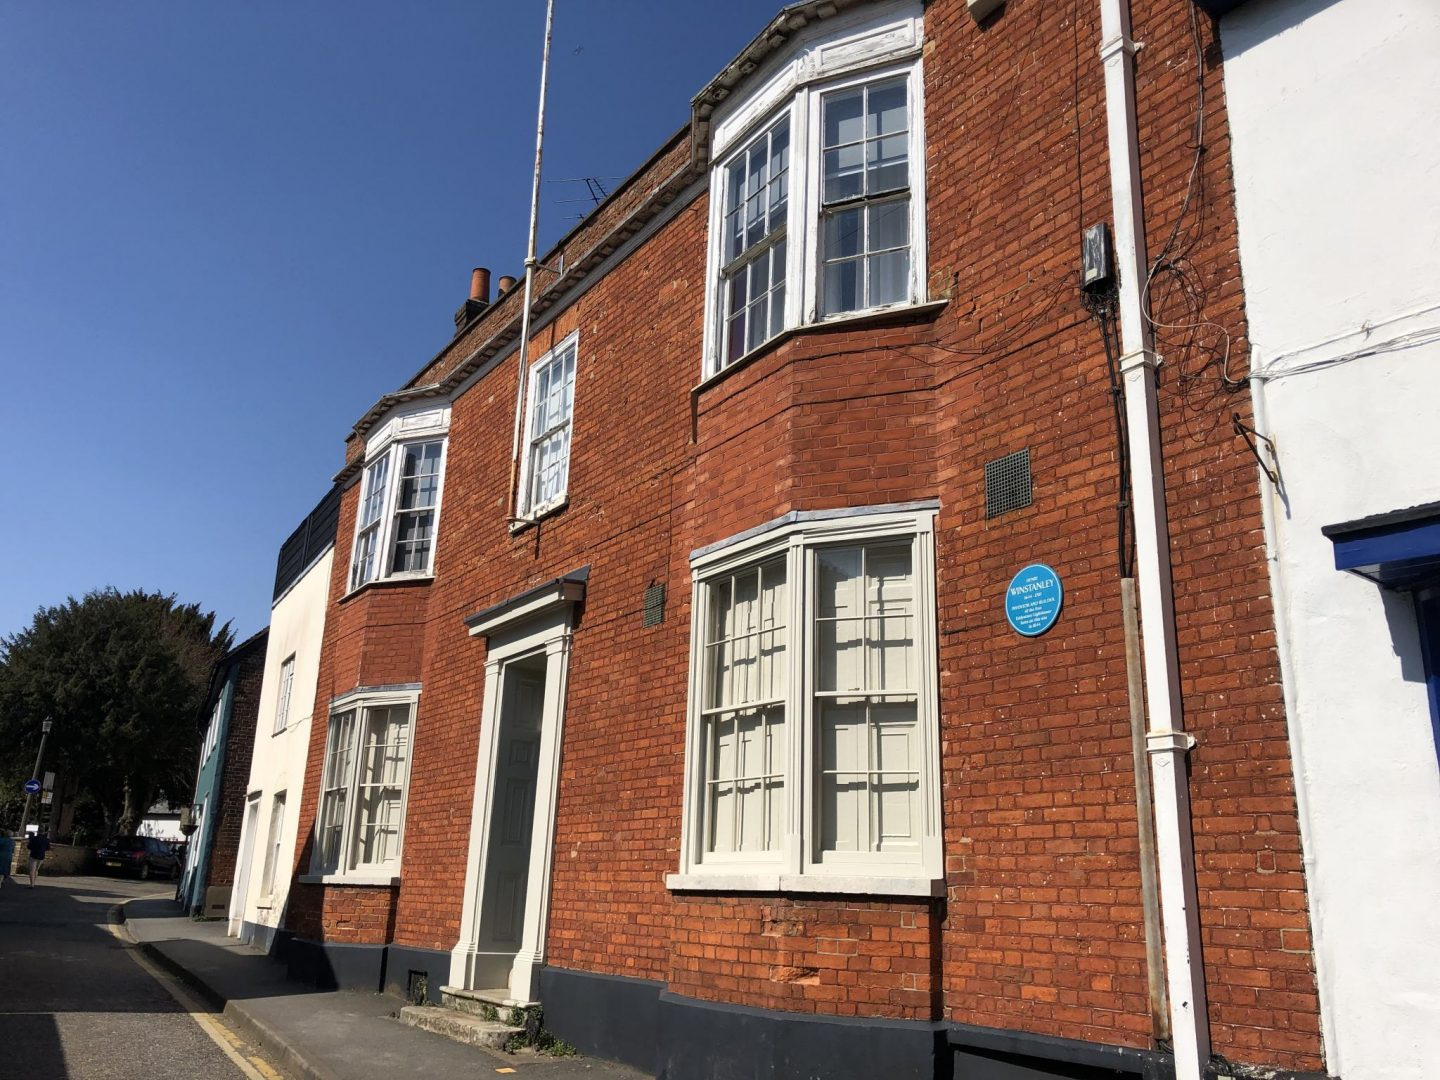 The house in Saffron Walden where Winstanley was born.